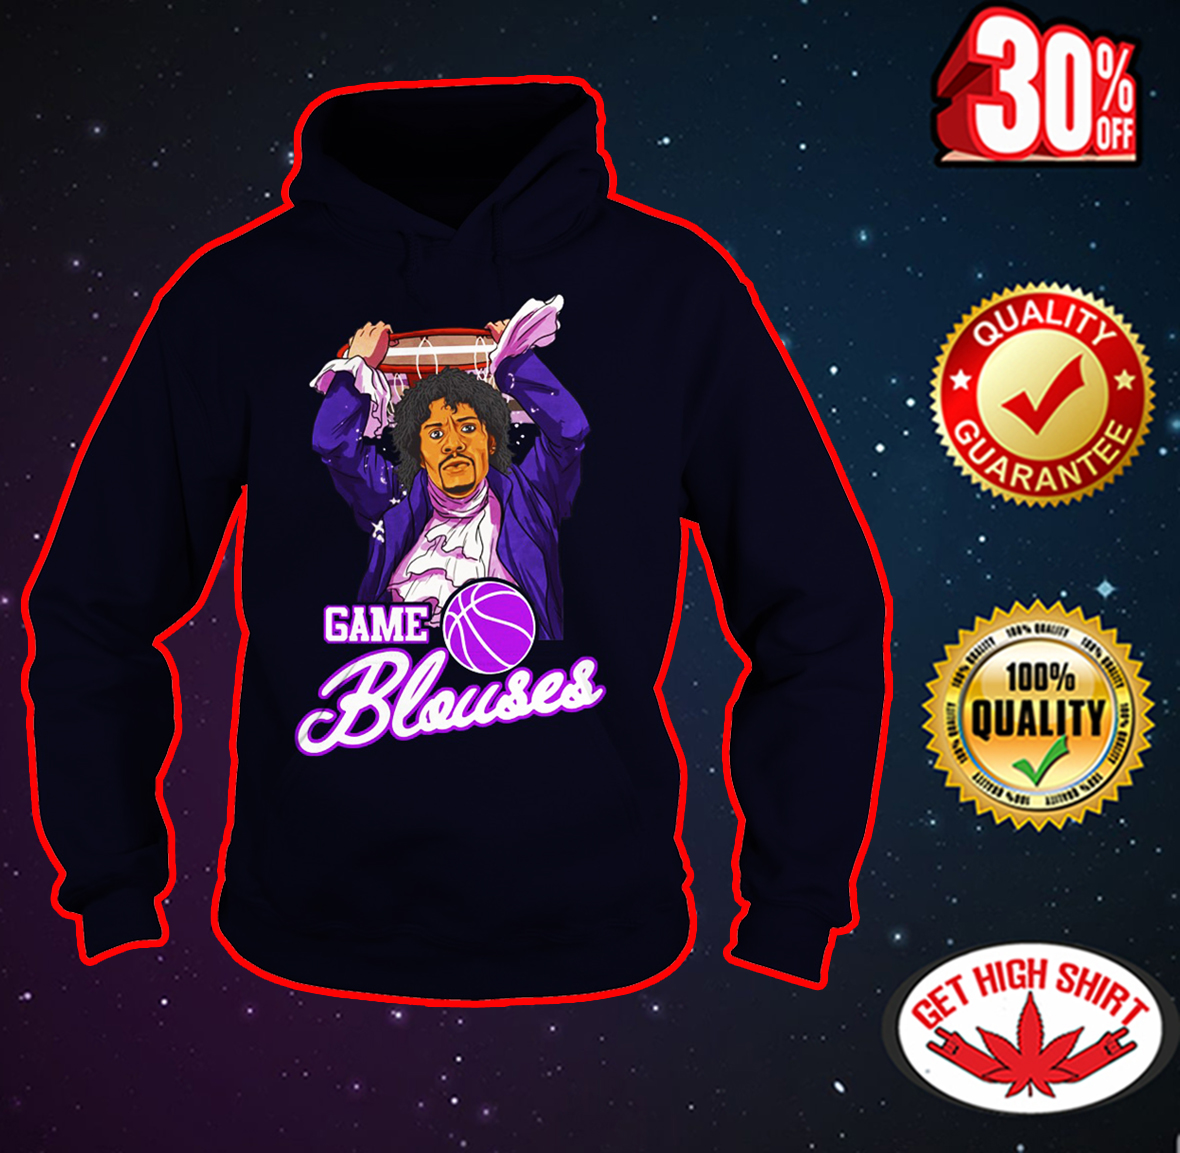 Game Blouses Chappelle's Show hoodie